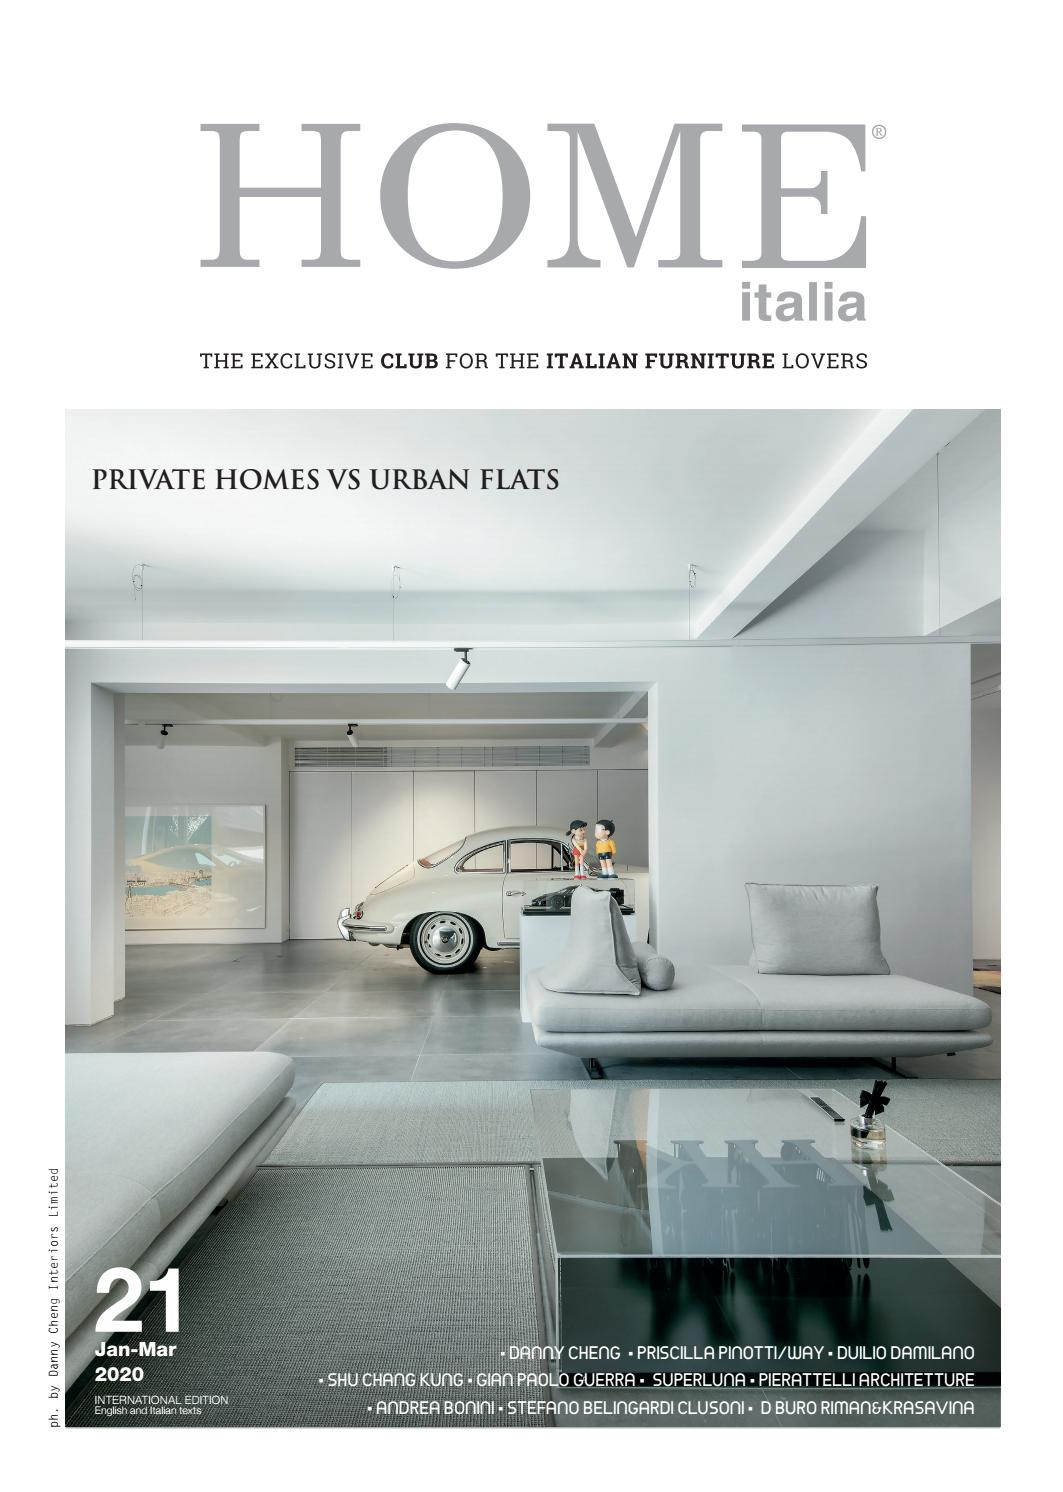 Libreria A Muro Moderna Ikea home italia 21th edition by home italia - issuu